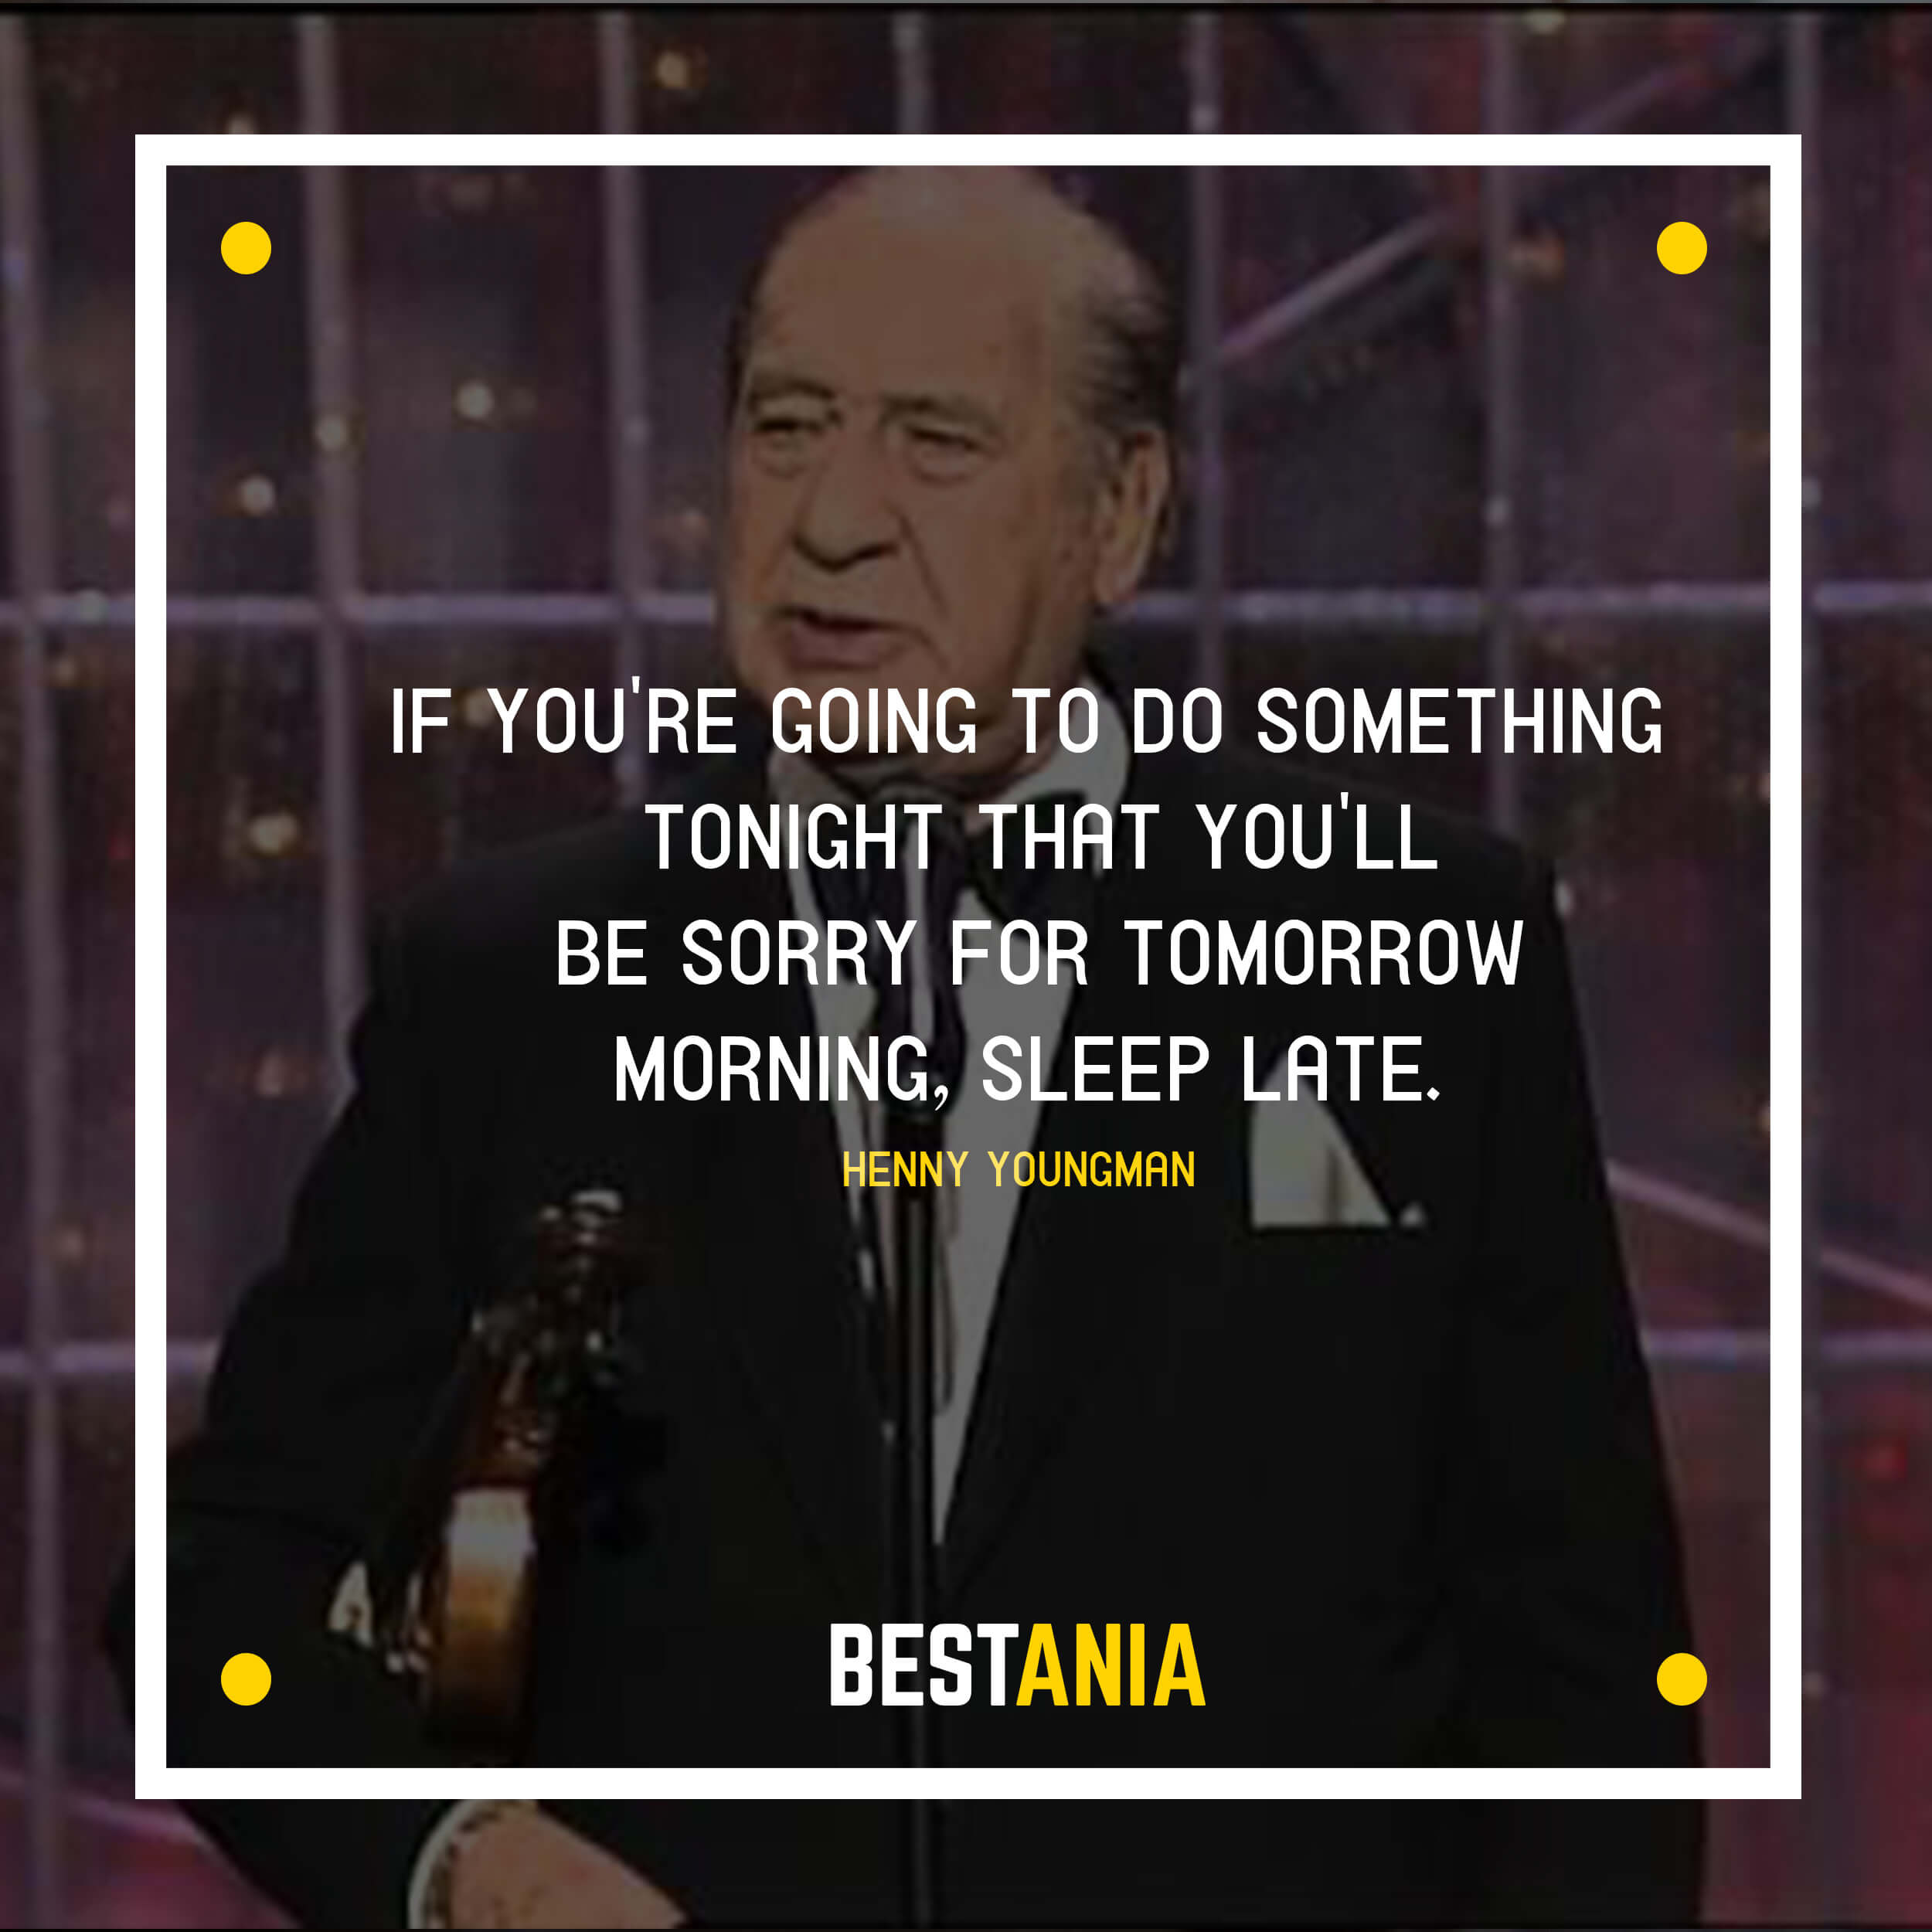 """IF YOU'RE GOING TO DO SOMETHING TONIGHT THAT YOU'LL BE SORRY FOR TOMORROW MORNING, SLEEP LATE.""  HENNY YOUNGMAN"